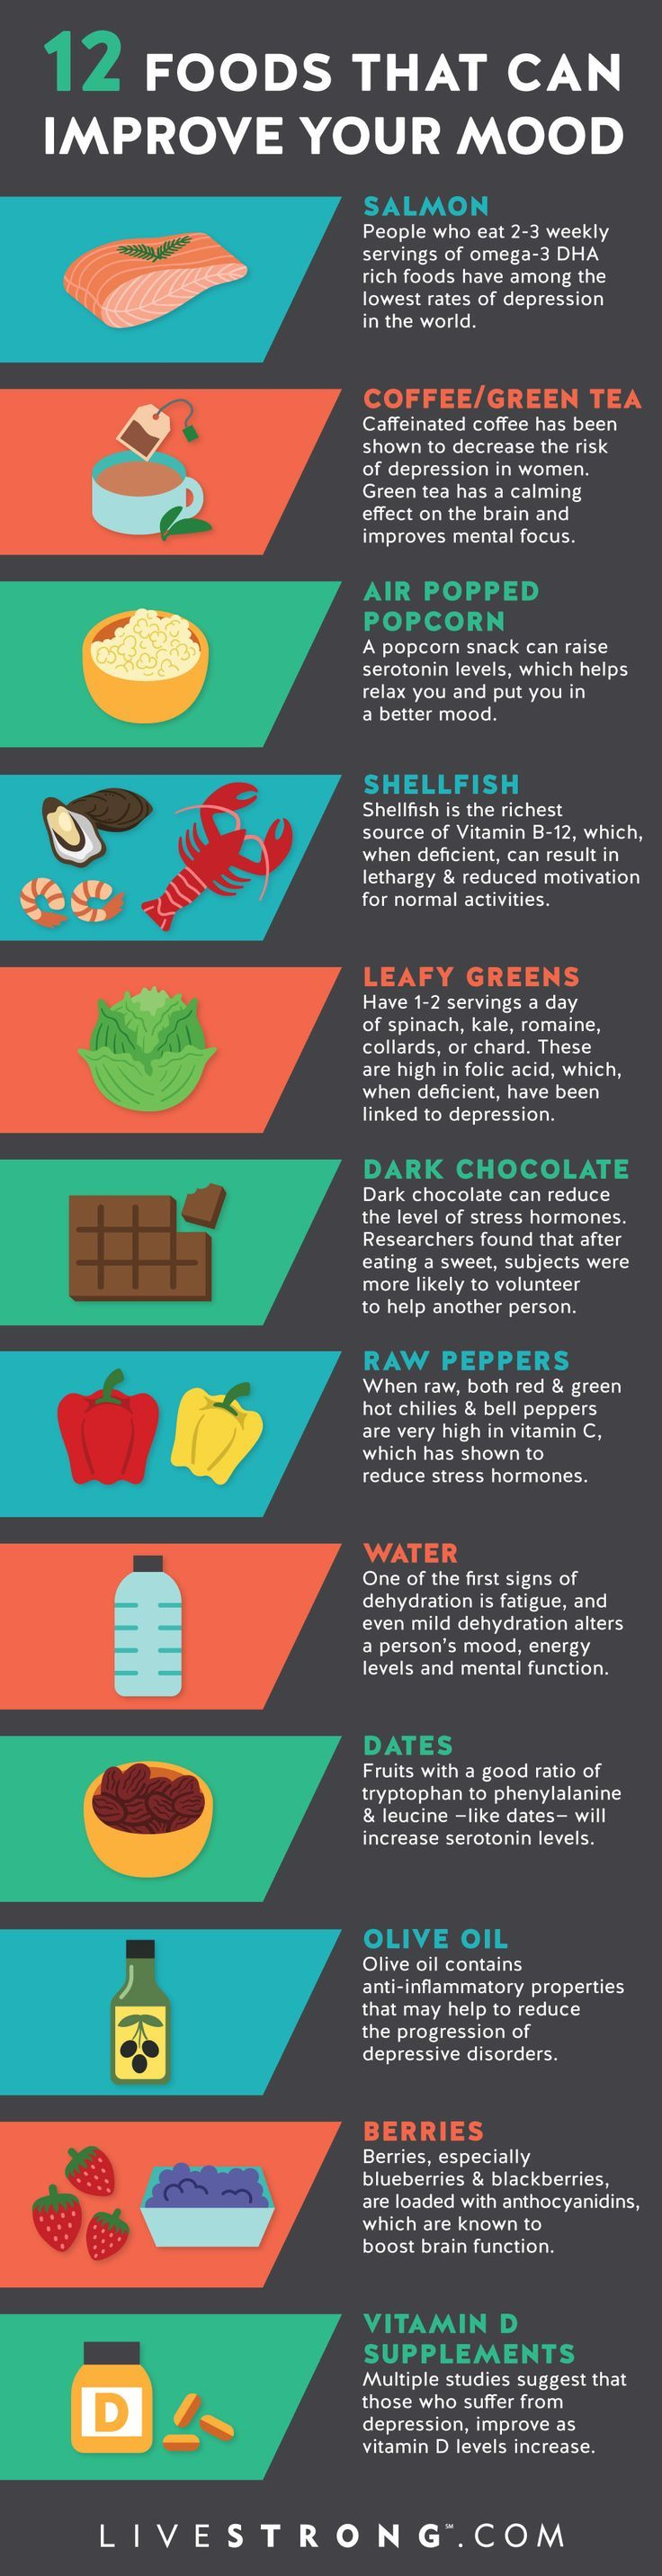 Food in general changes my mood, but this is good to know - 12 Foods That Can Improve Your Mood: